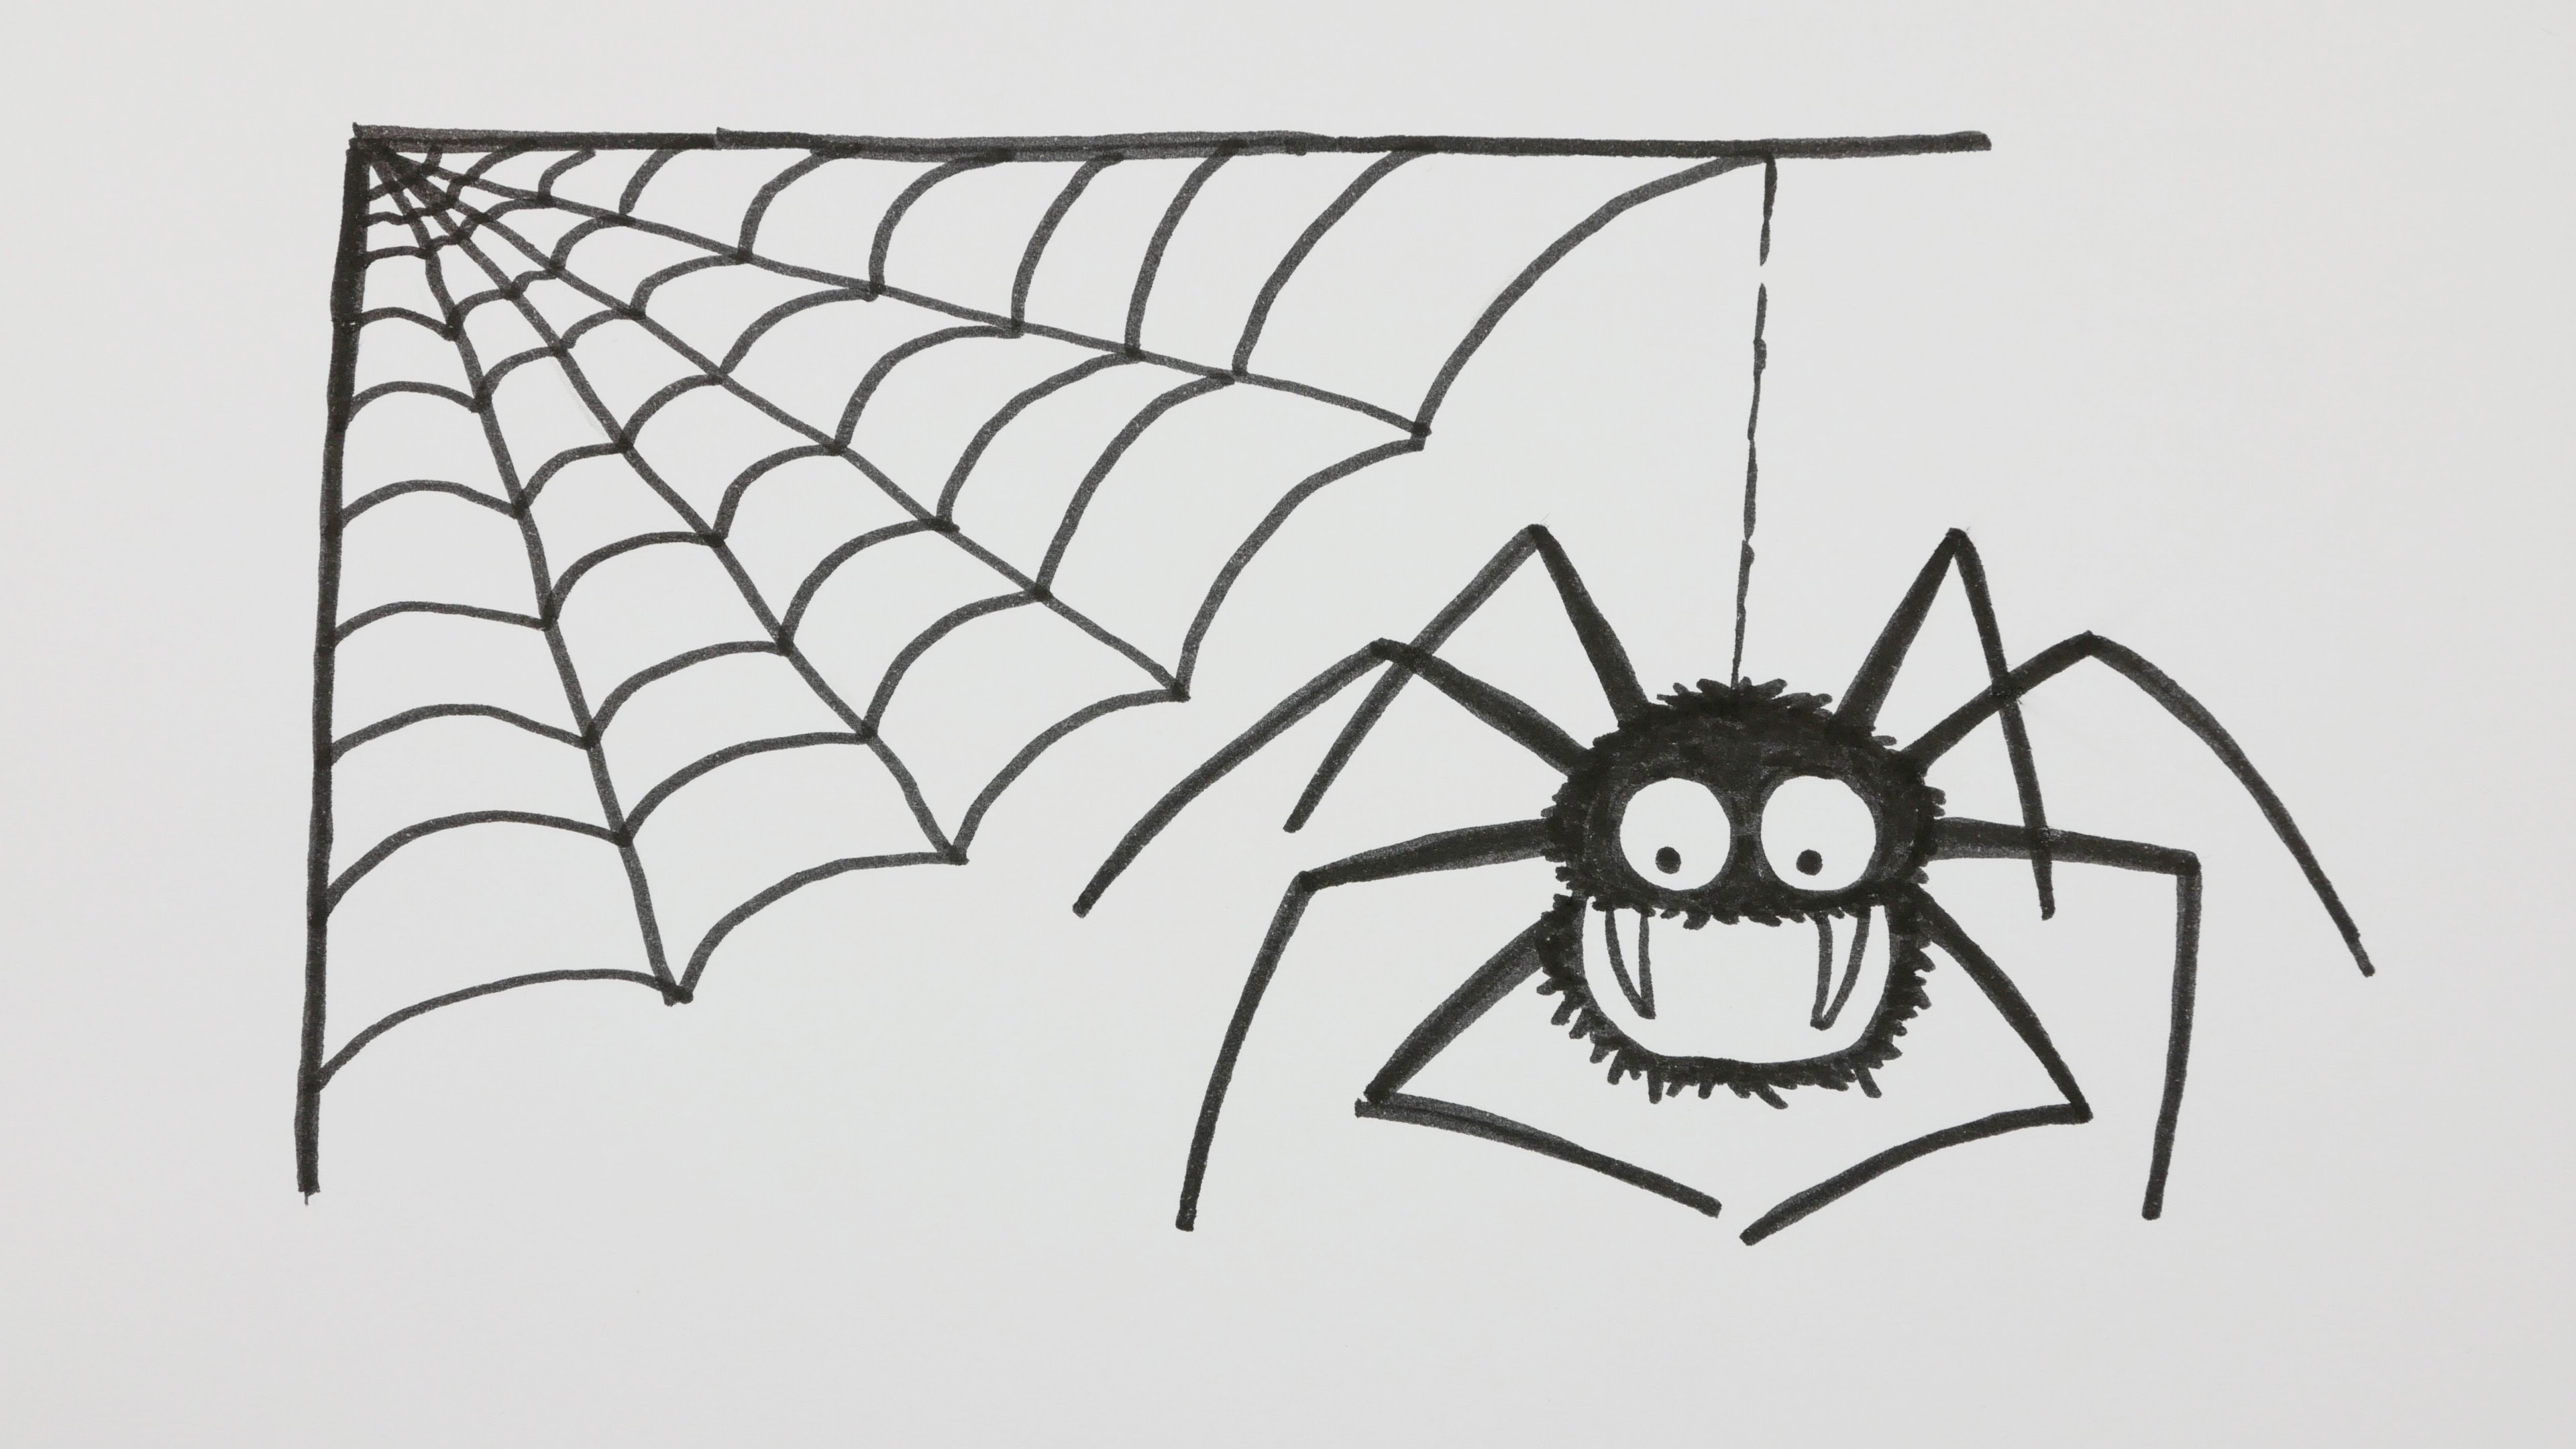 Drawn spider web cartoon Doodle Draw a Spiderweb Spider